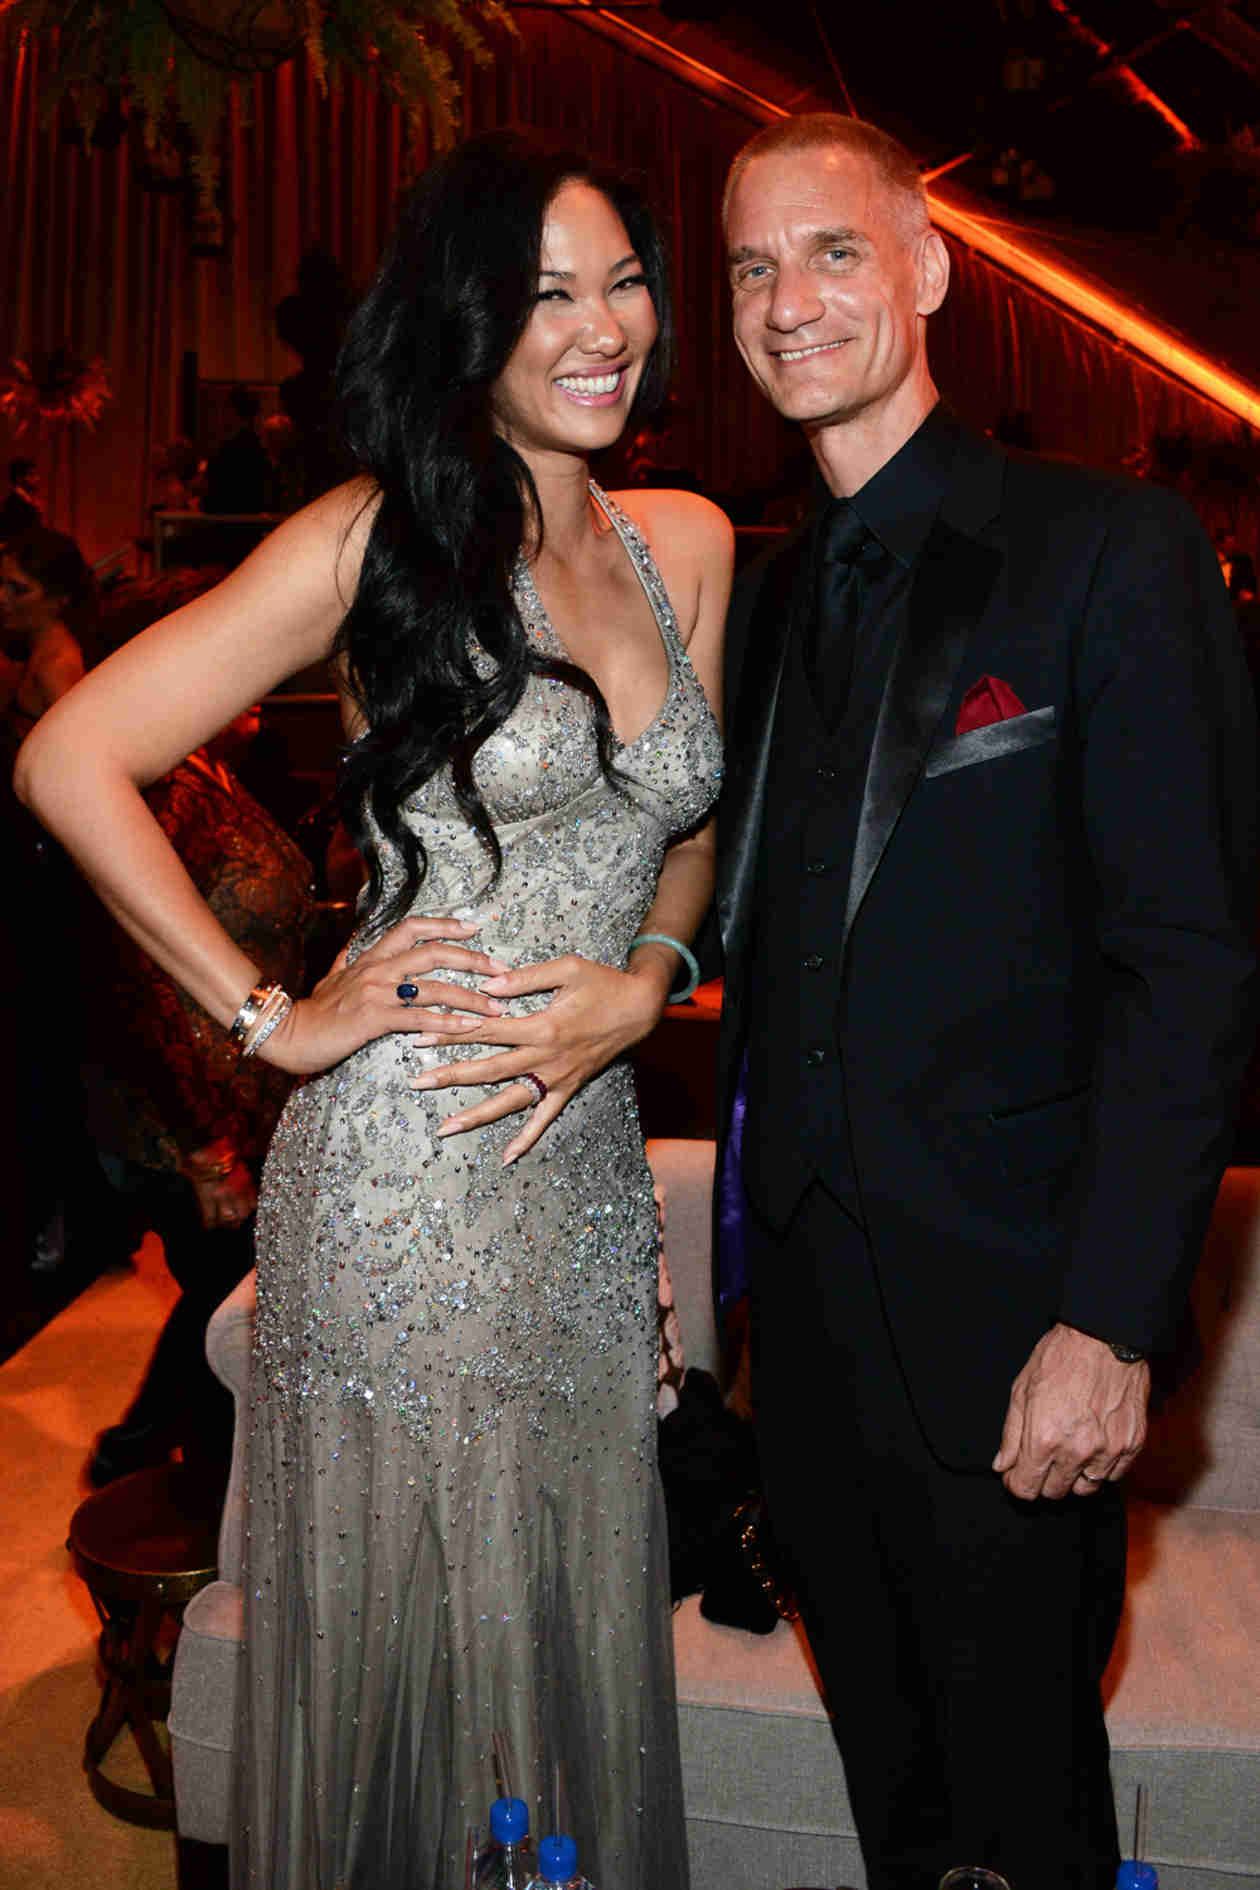 Kimora Lee Simmons Gets Secretly Married — Then Her Ex Spills the Beans!